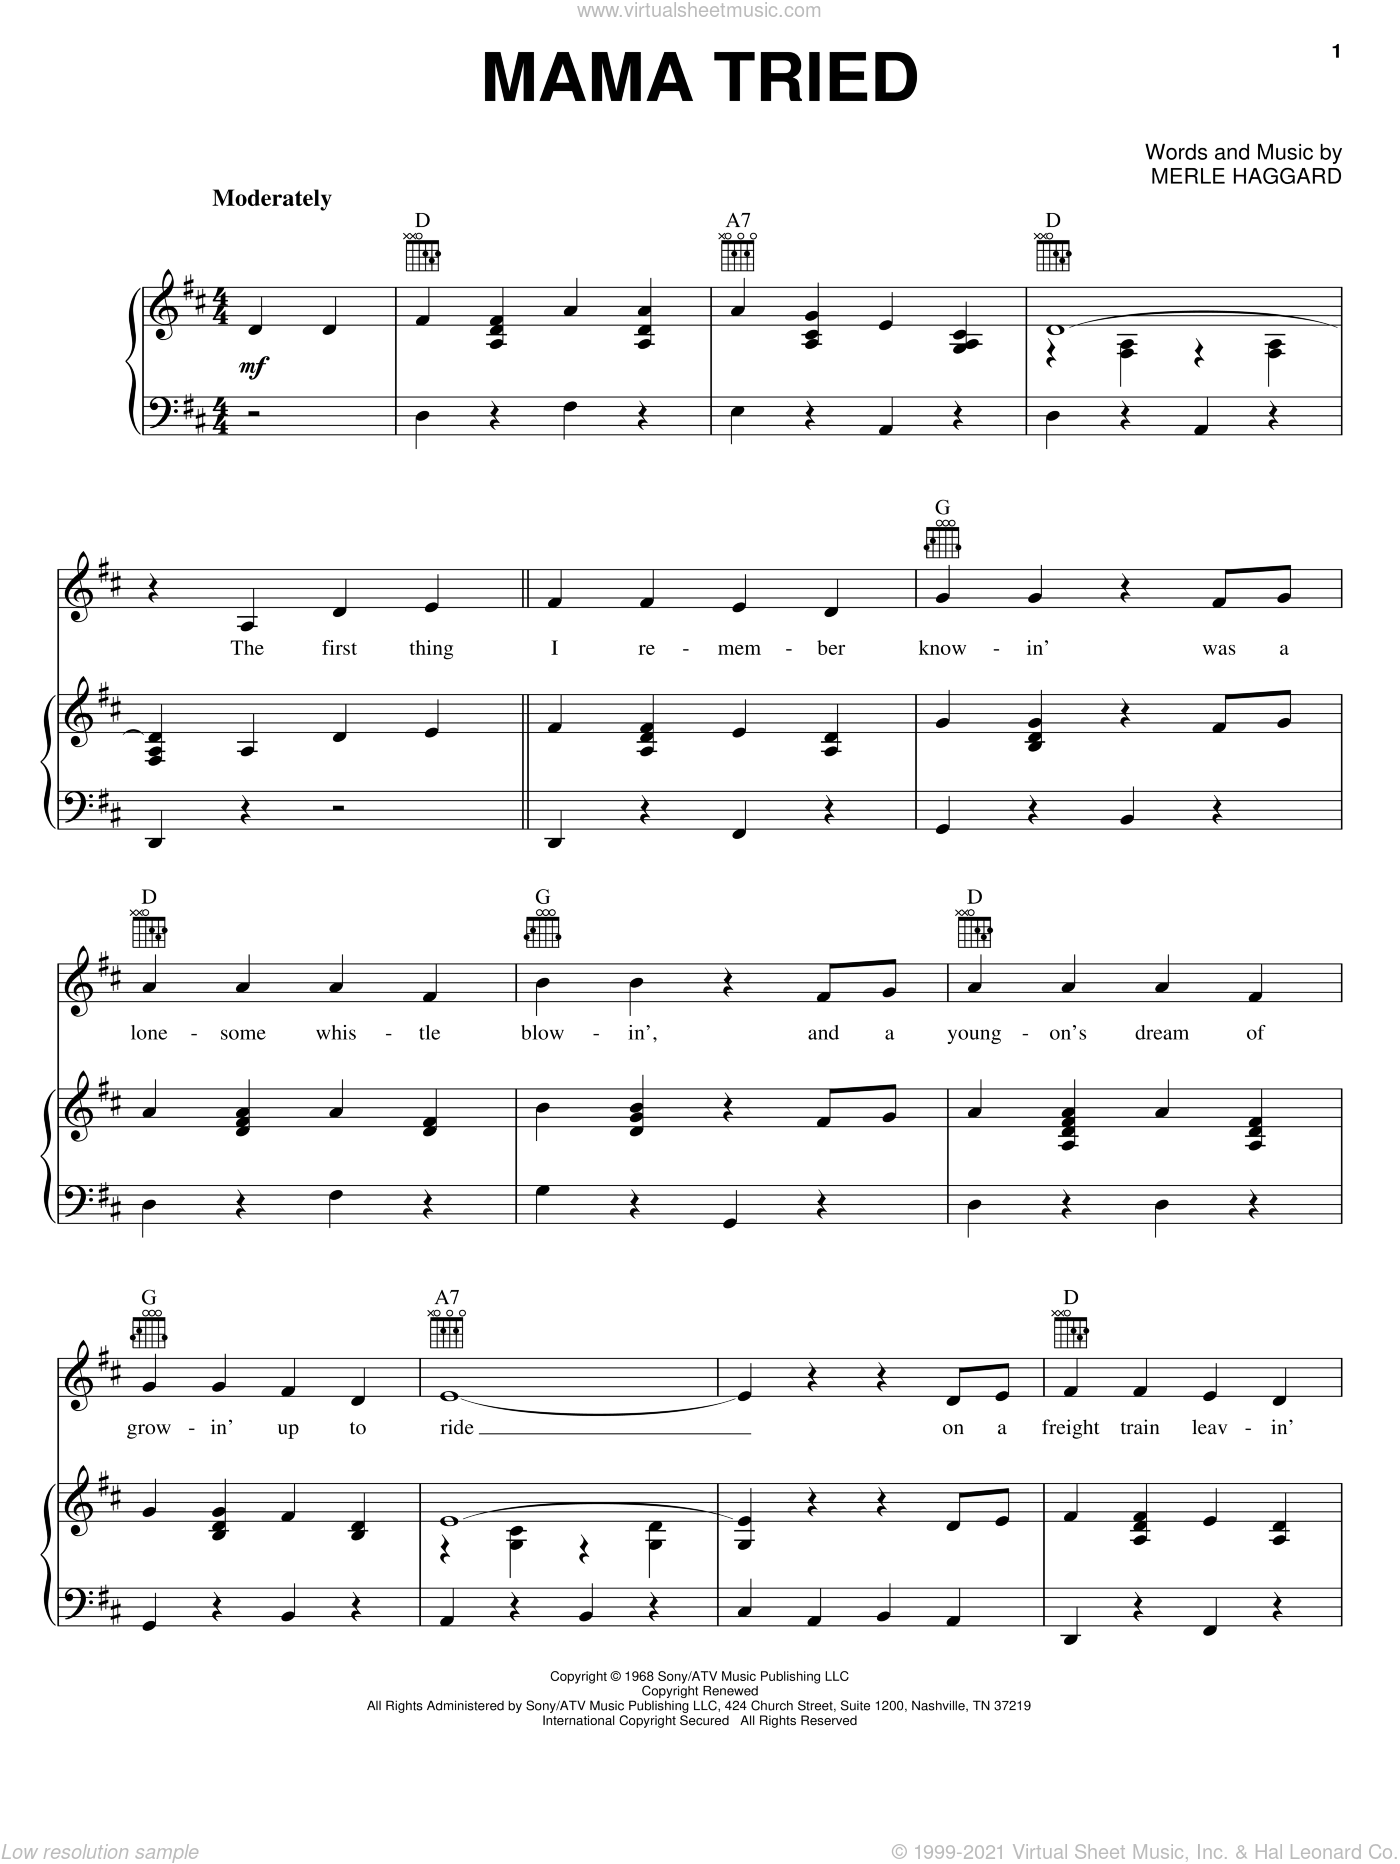 Mama Tried sheet music for voice, piano or guitar by Merle Haggard